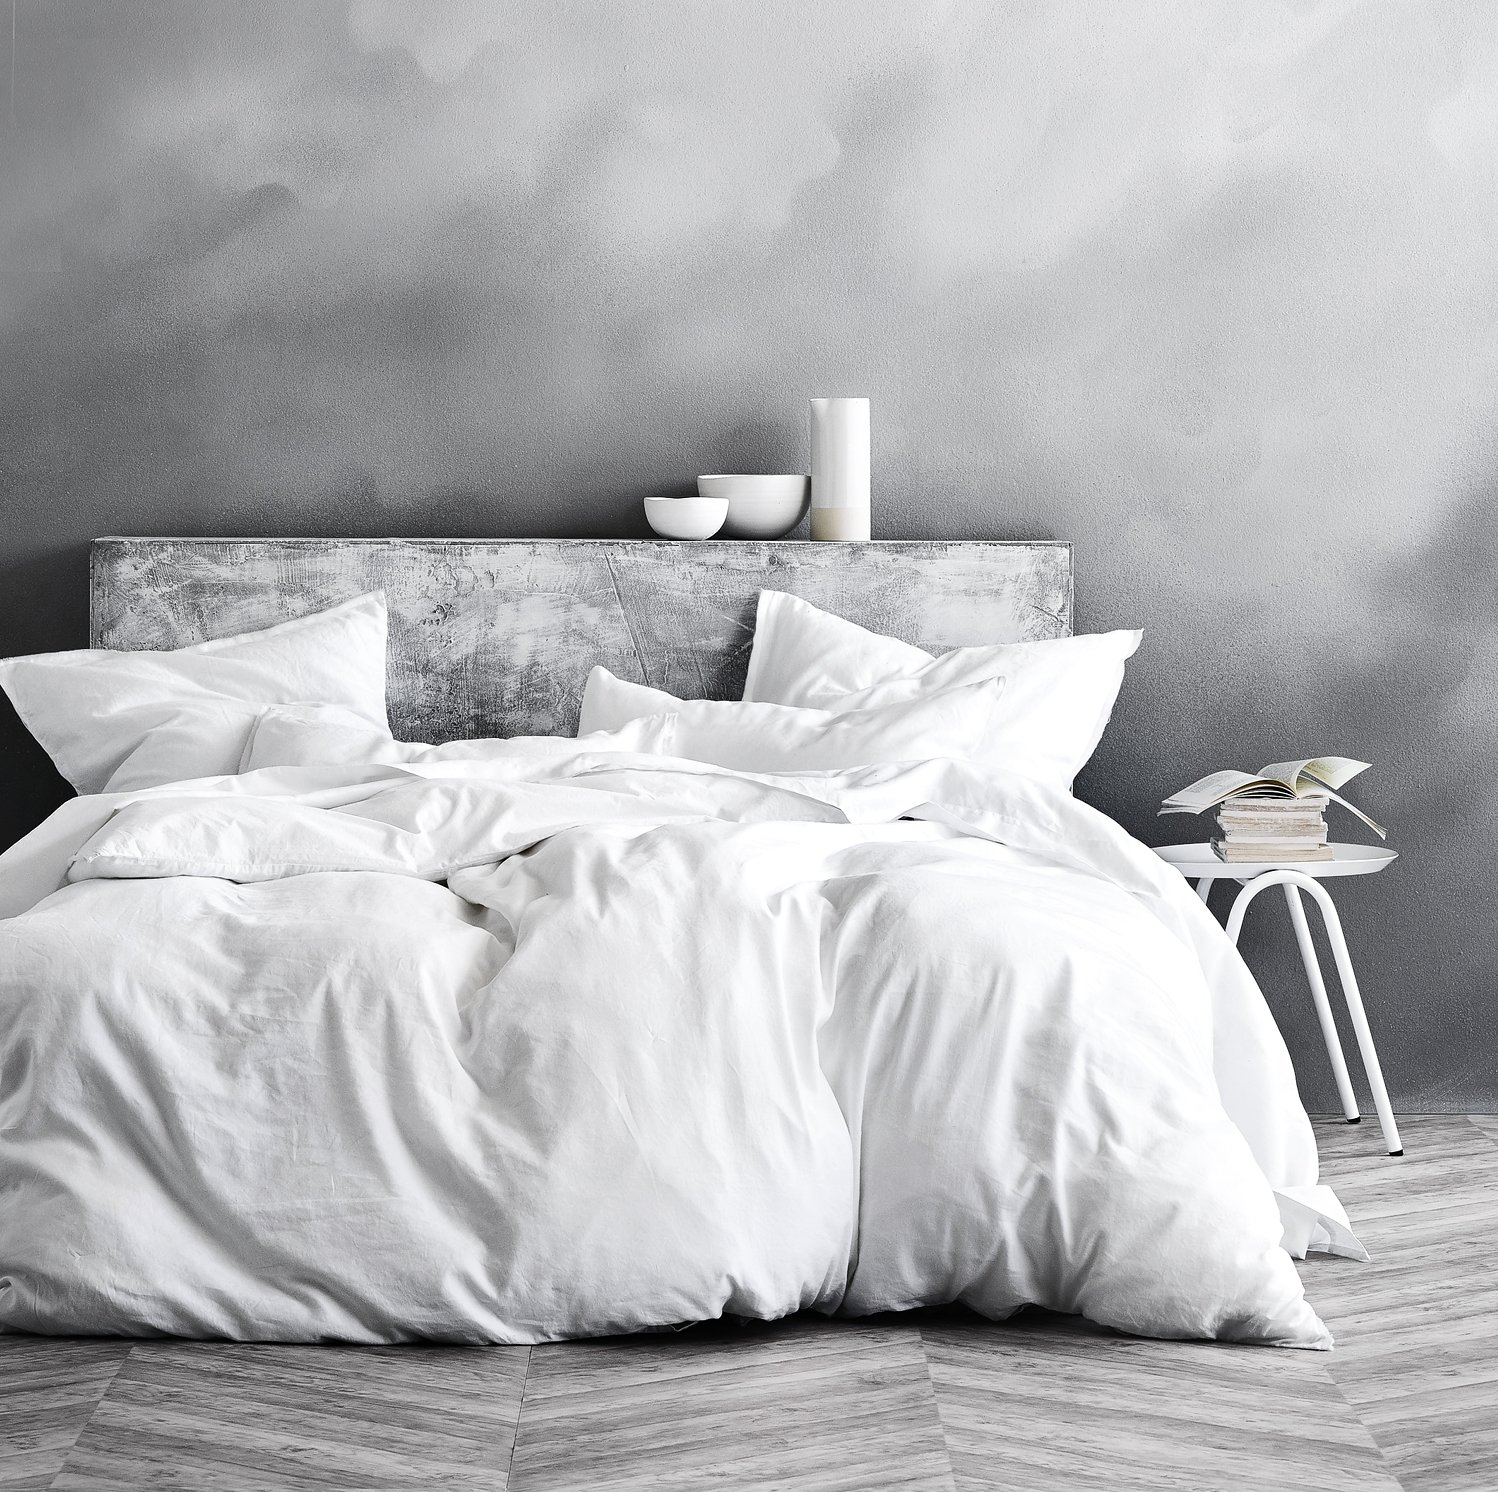 Buy Best Beautiful Duvet Covers Ease Bedding With Style